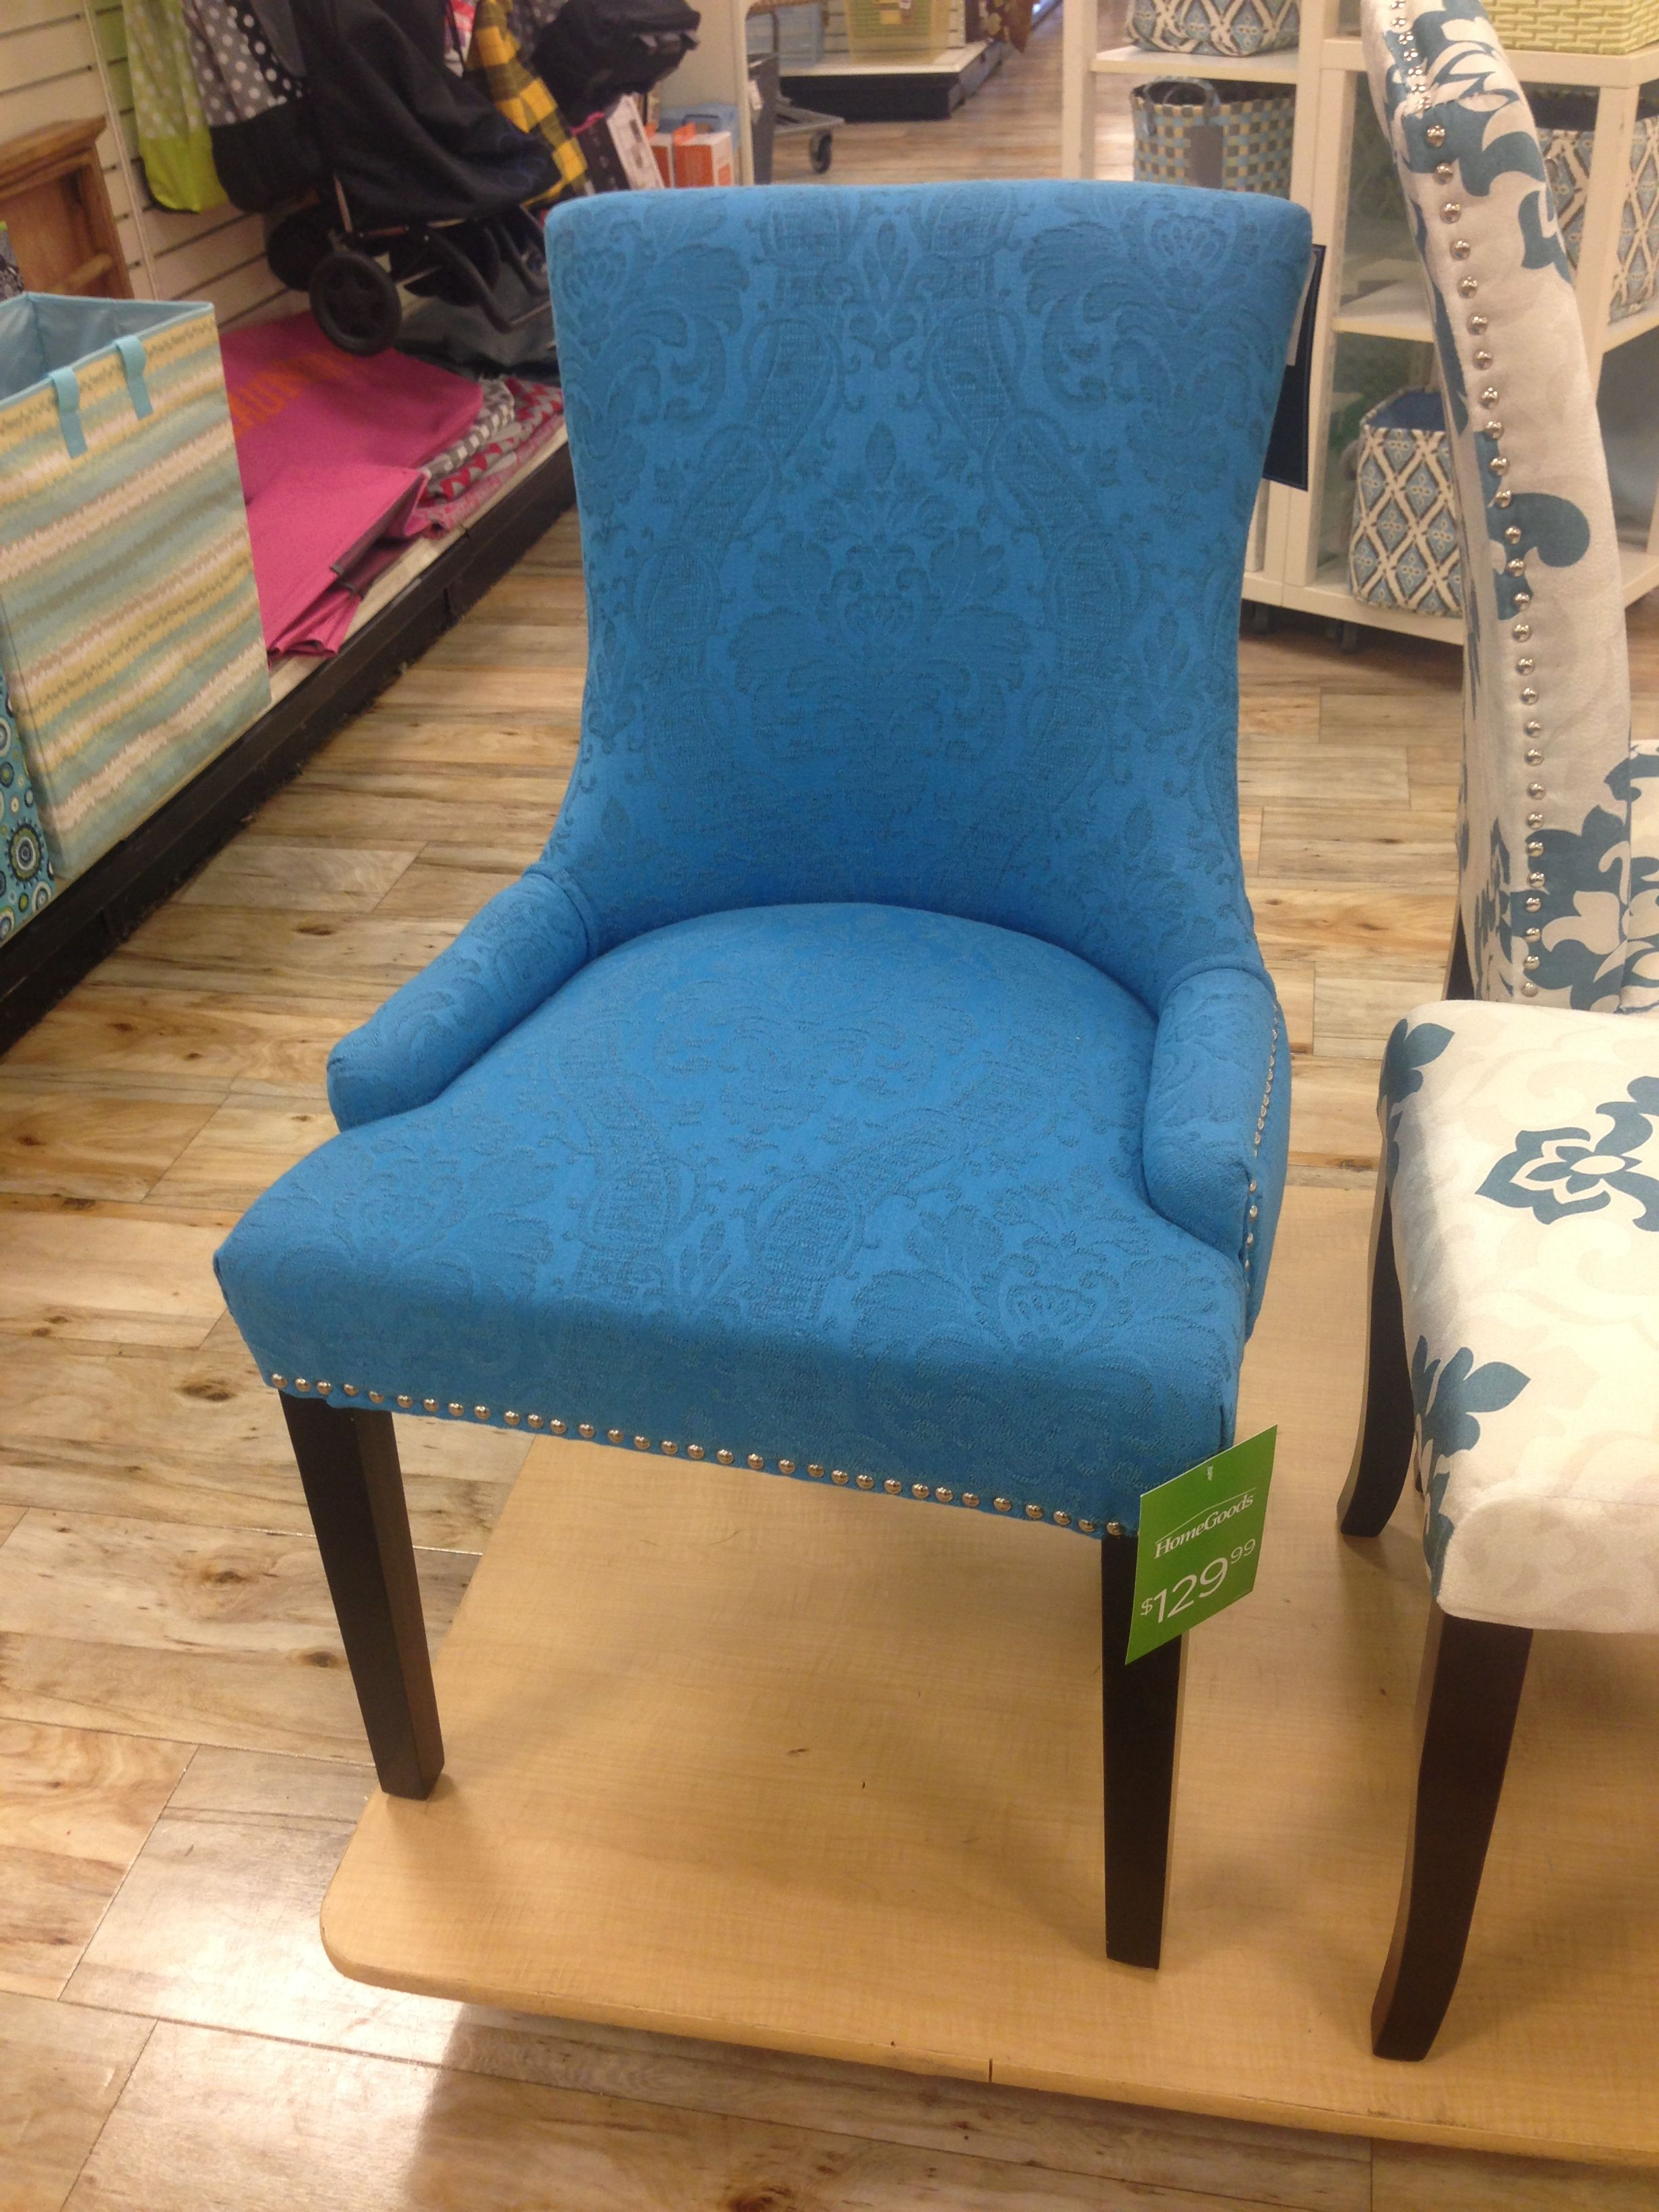 Cynthia Rowley Chairs At Marshalls Dining Room Chair Covers Pier One Blue Nail Head Trim Accent